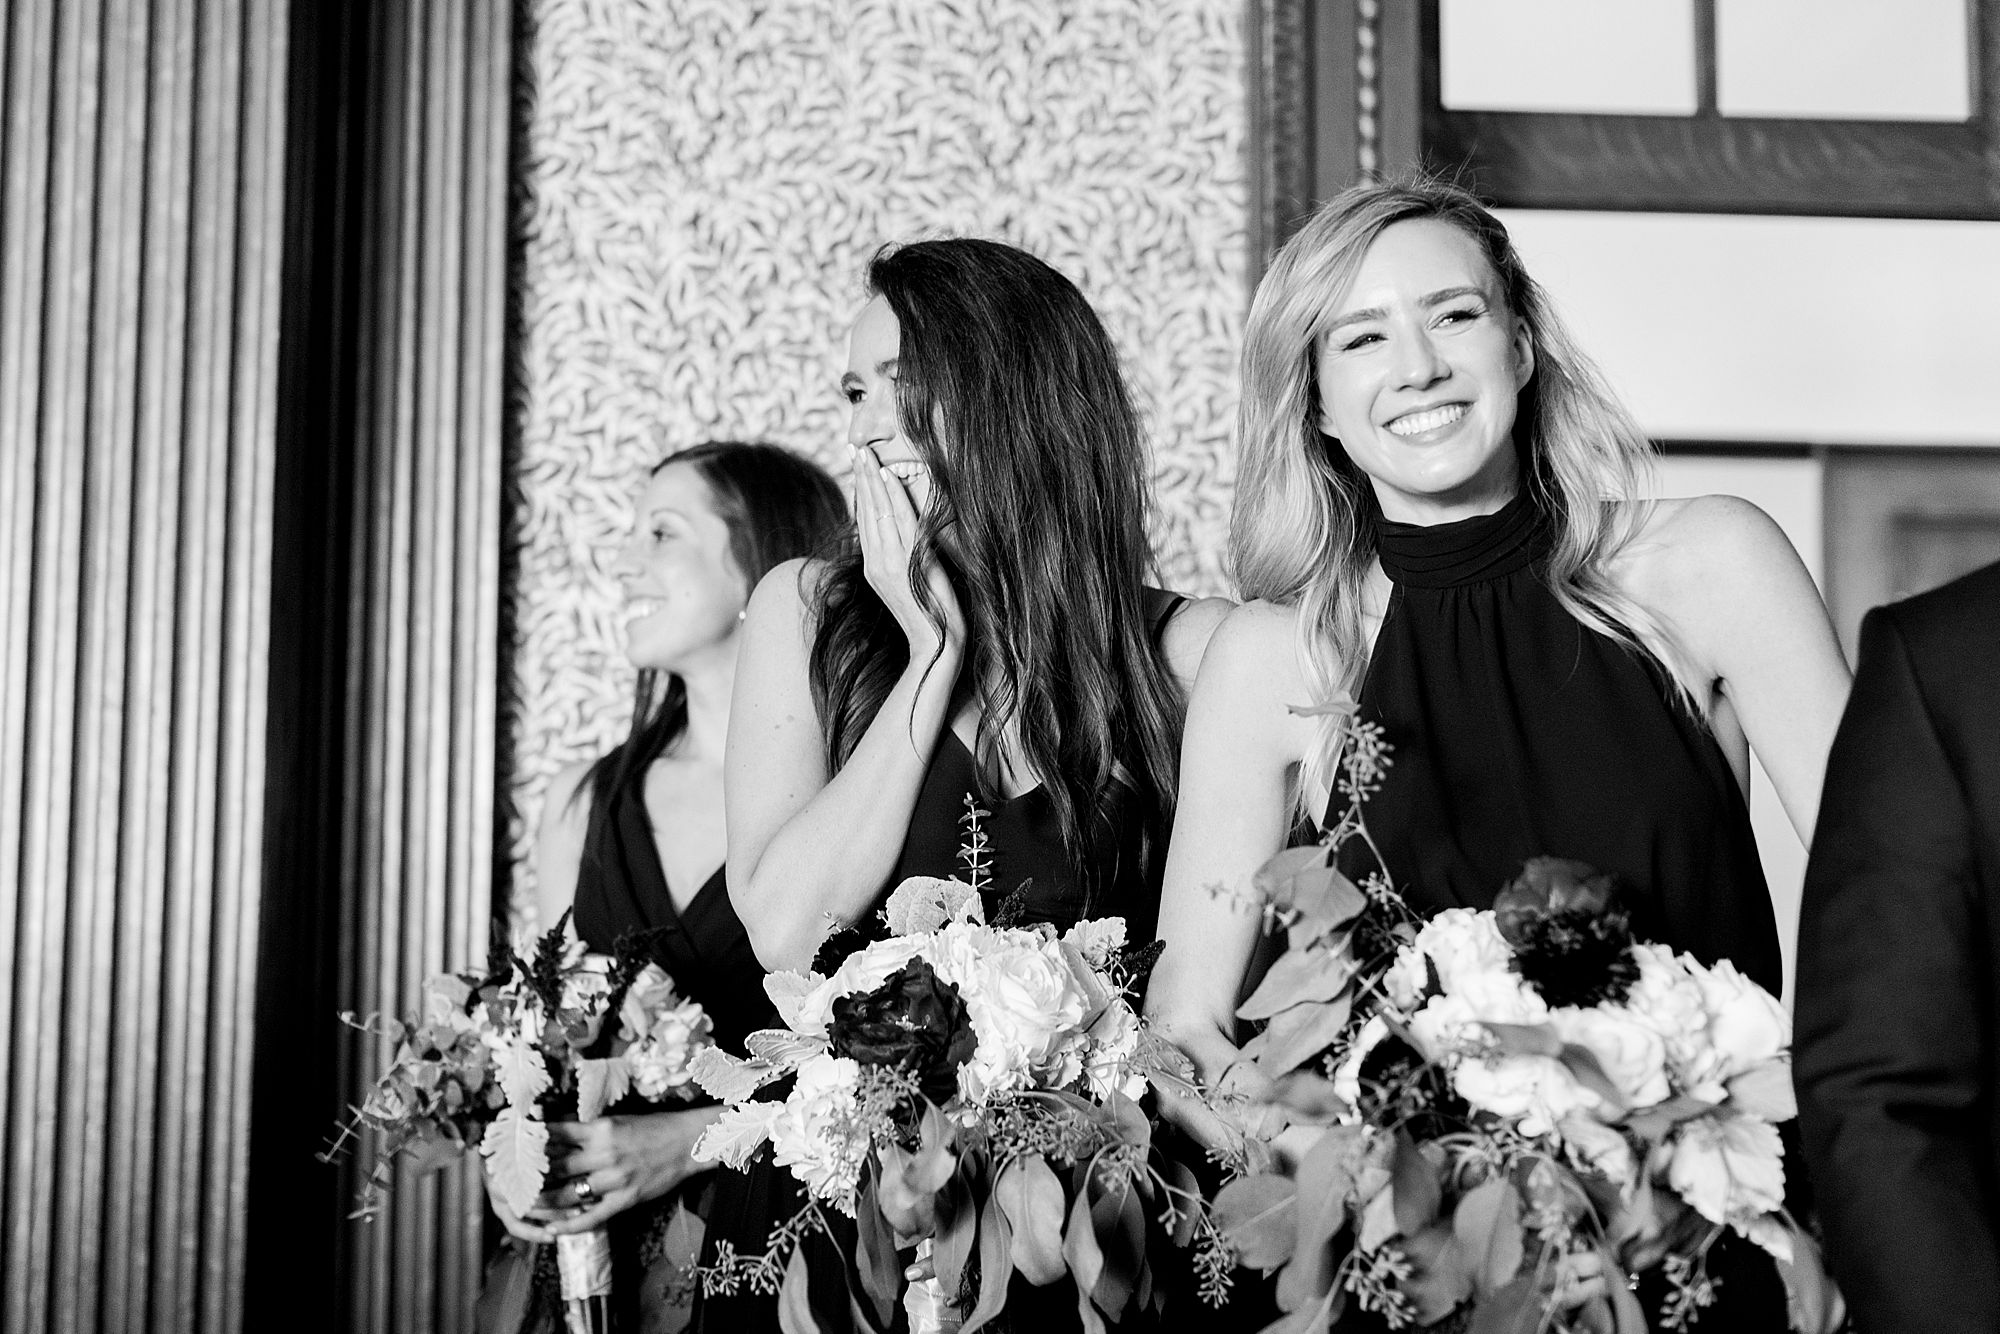 University Club Wedding in San Francisco - Cortney and Jon - San Francisco Wedding - Ashley Baumgartner - SF Wedding Photographer_0093.jpg